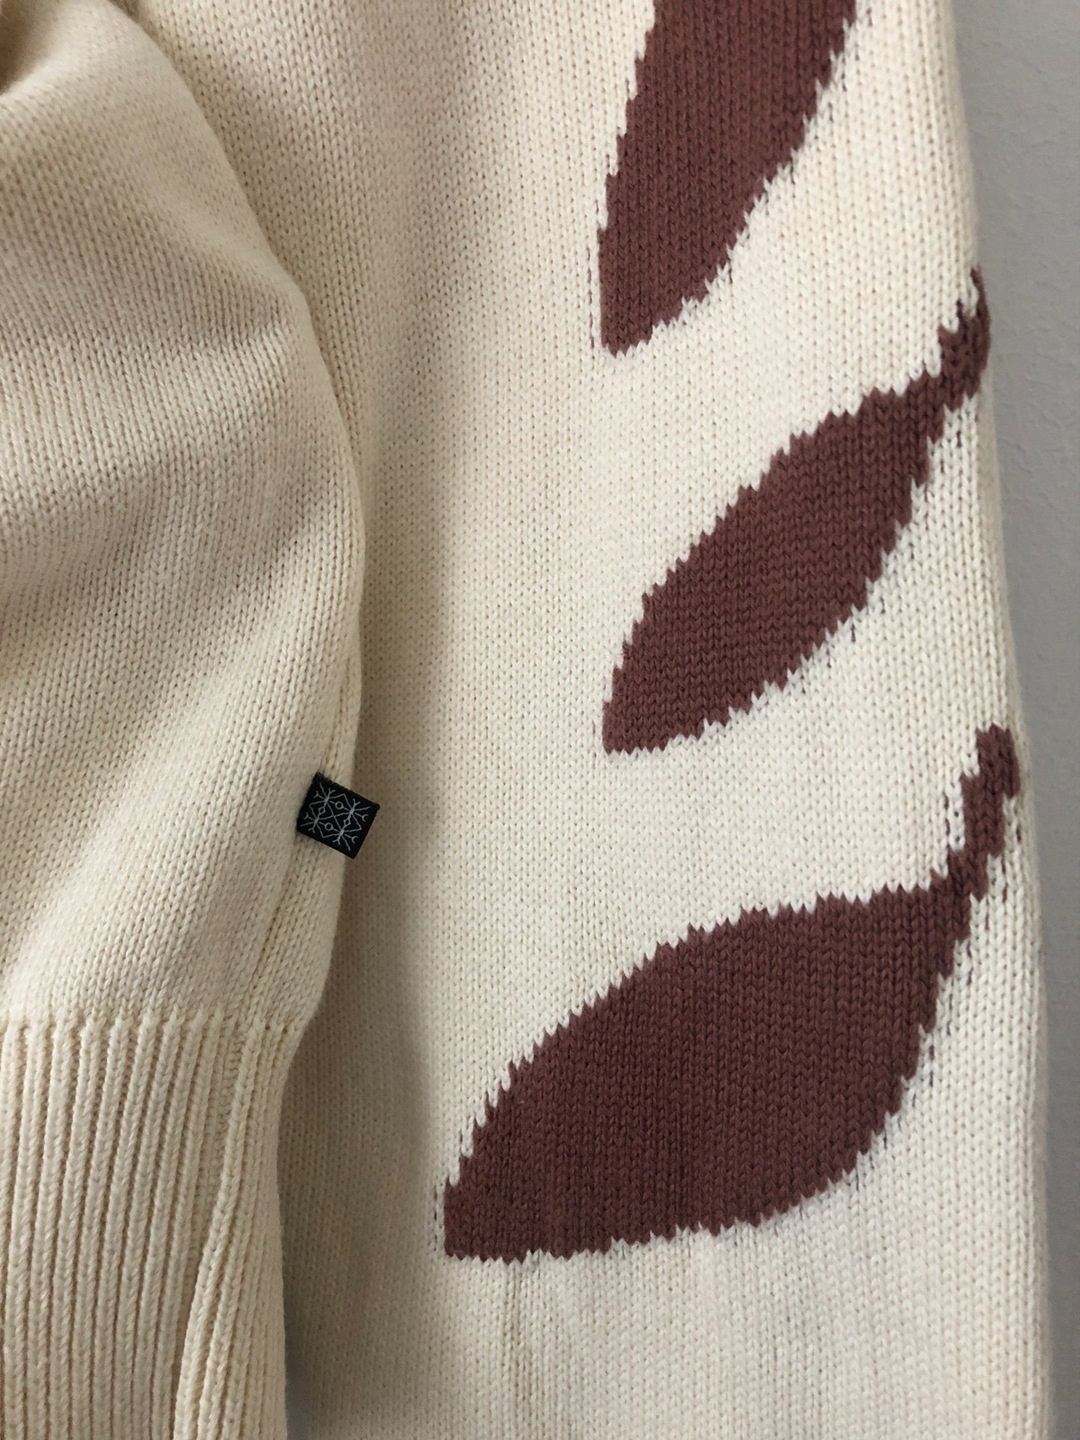 Women's jumpers & cardigans - KAIKO photo 2